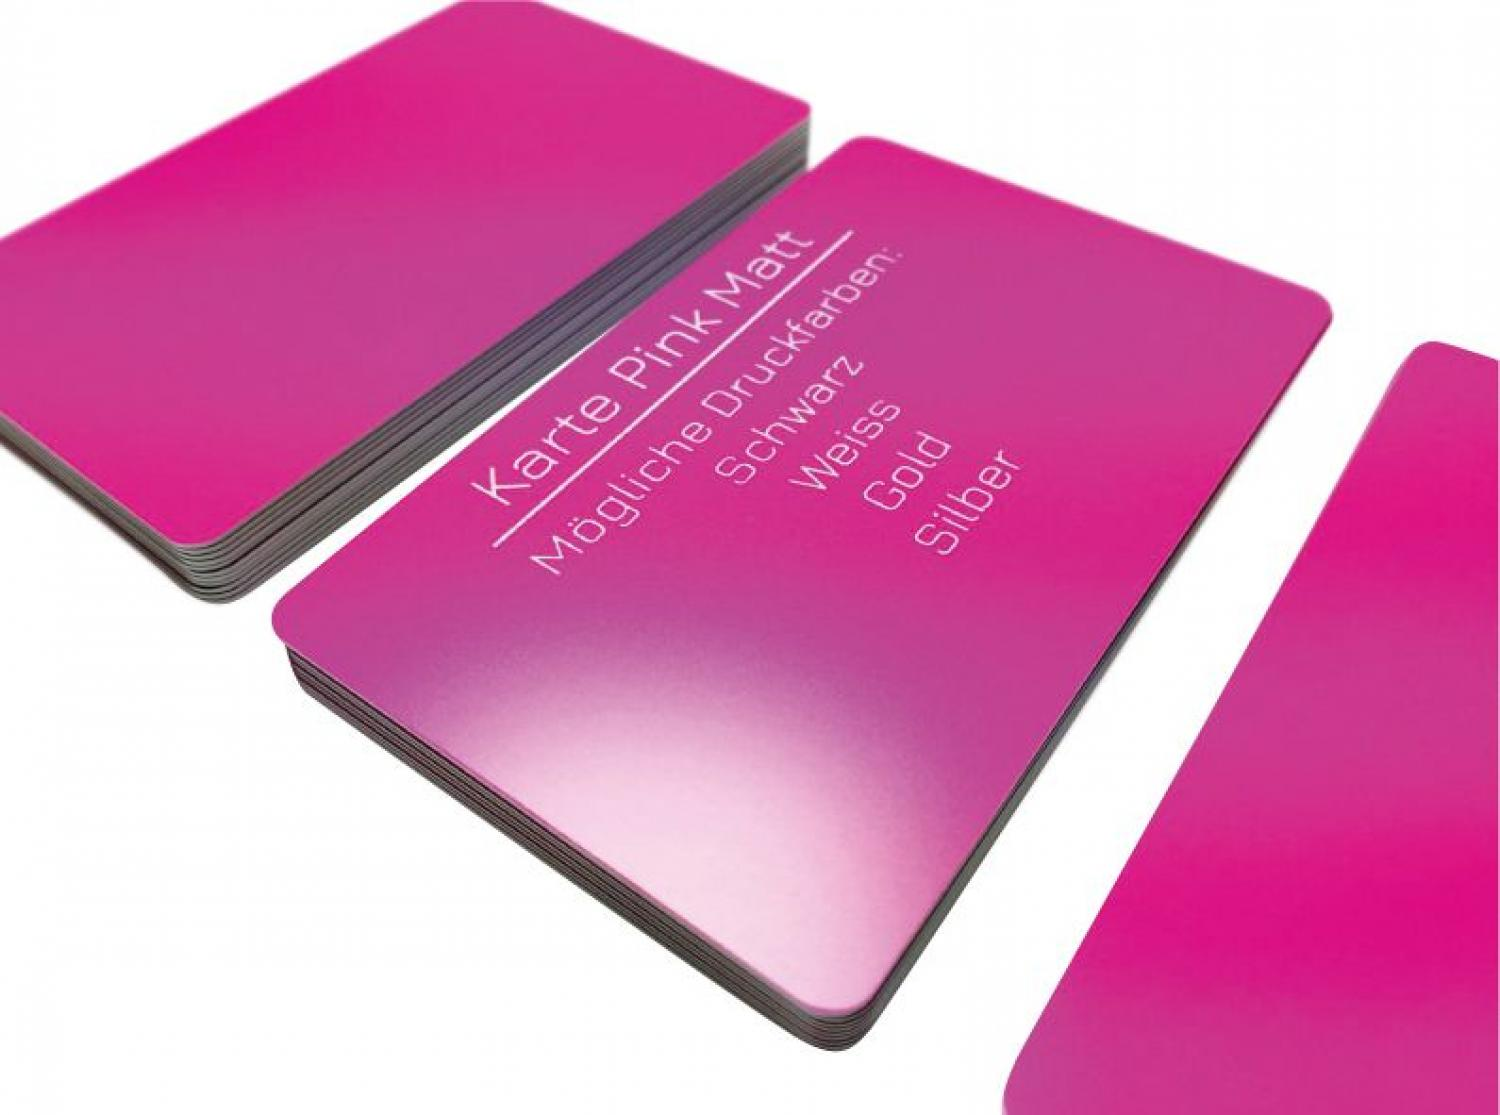 plastic card pink matt finish